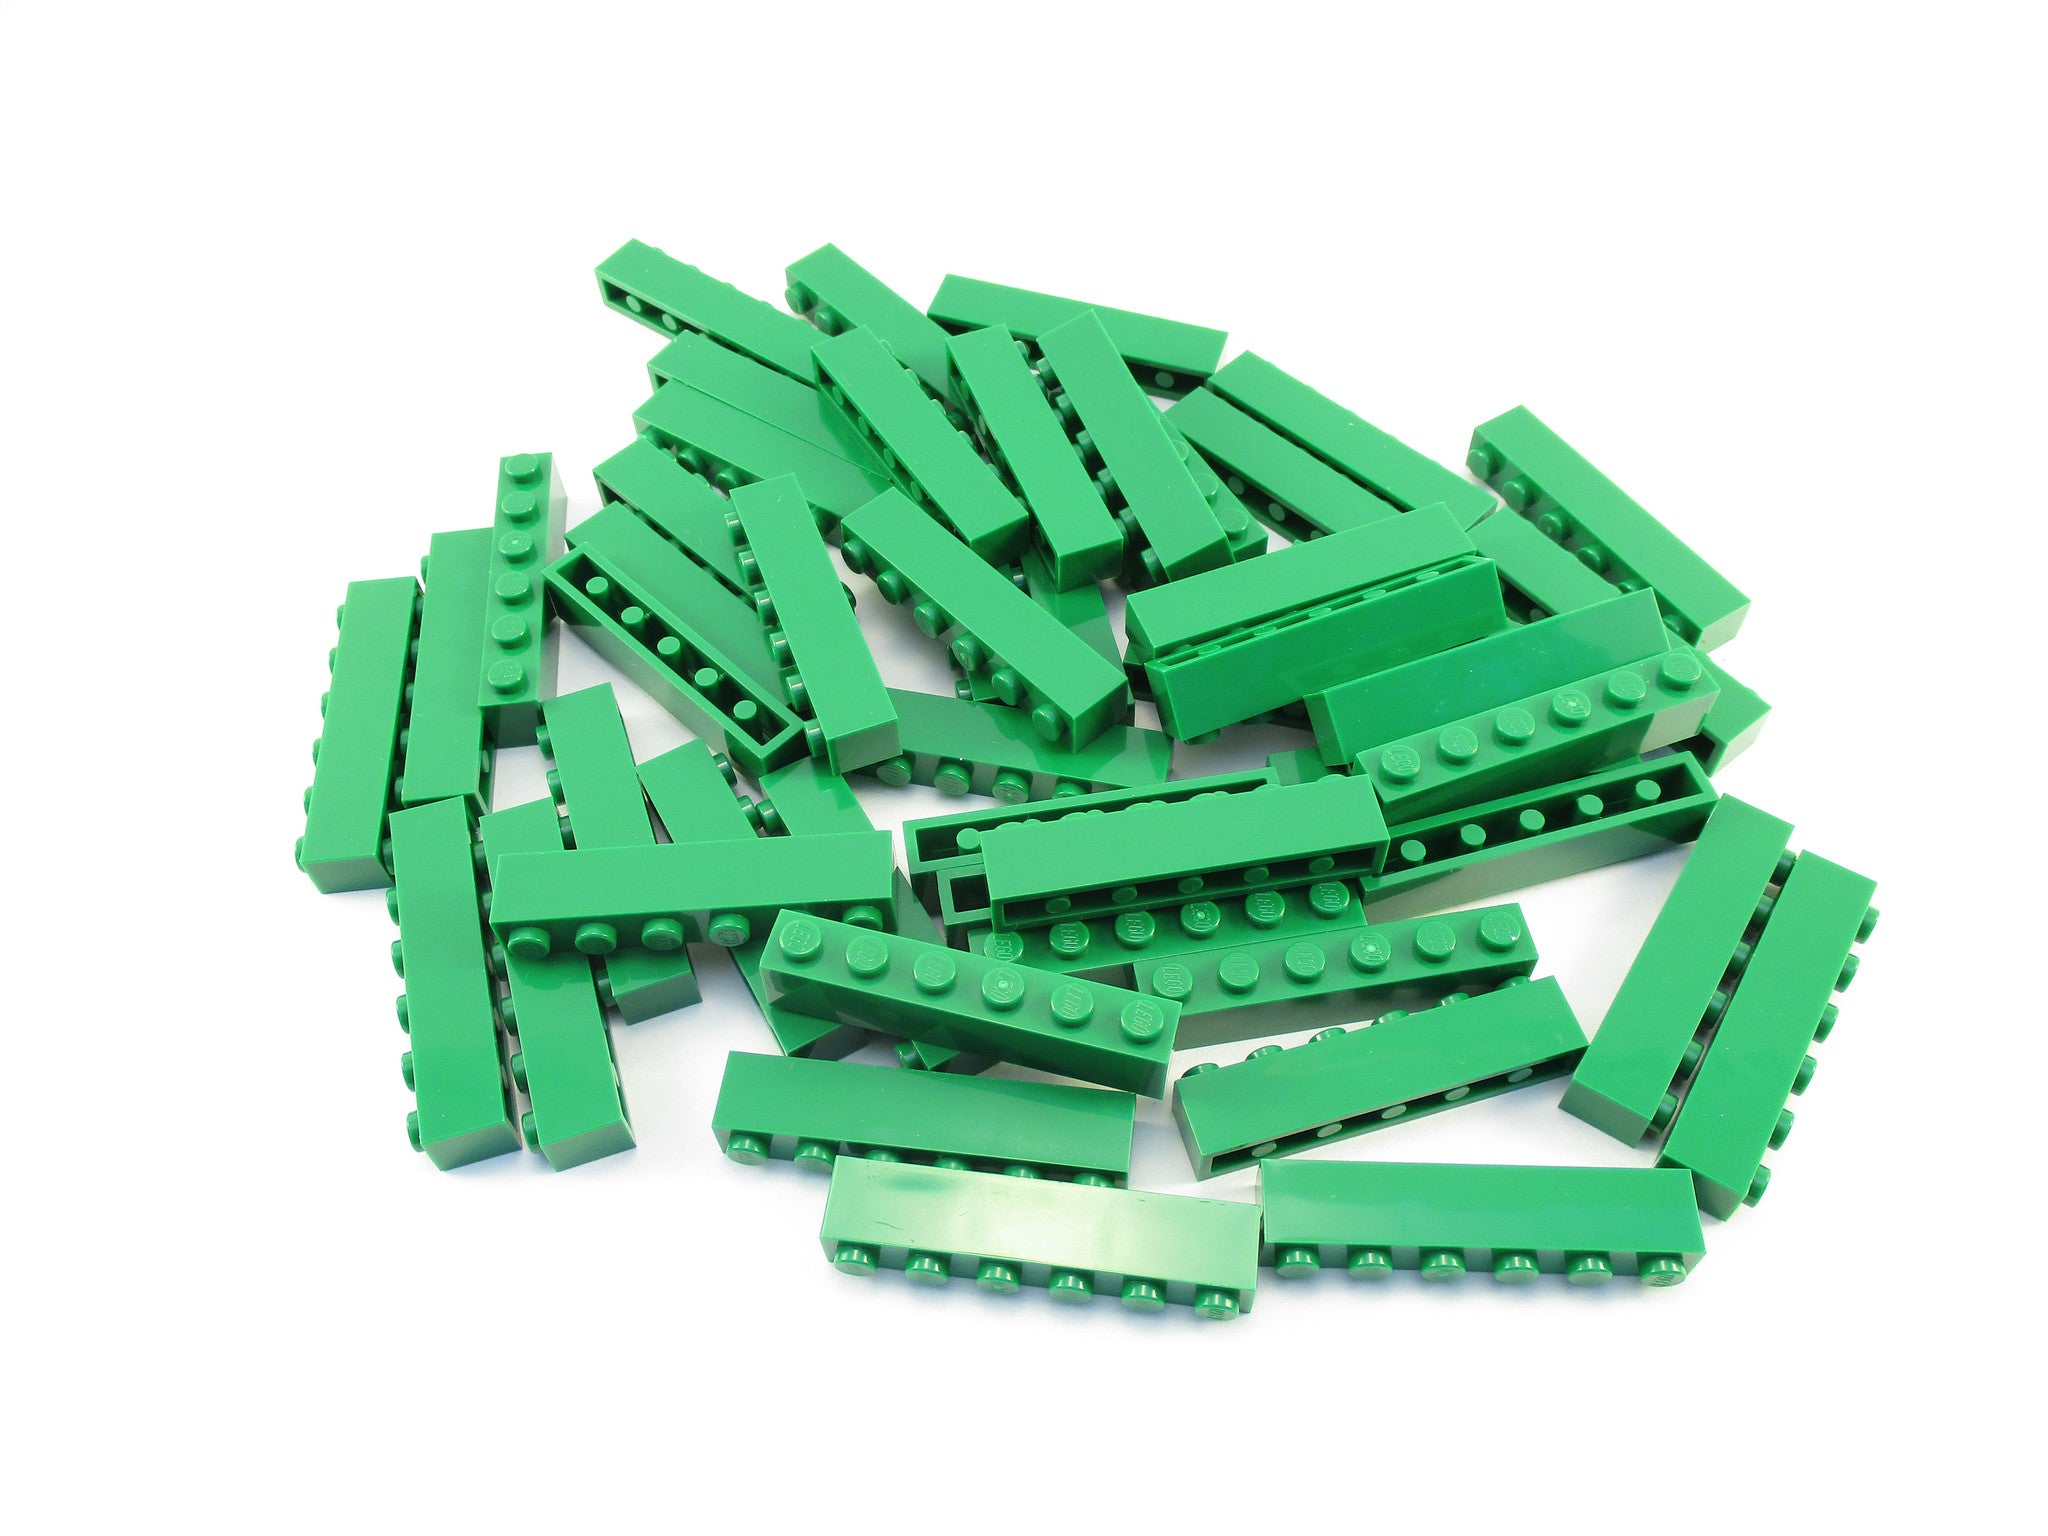 LEGO Green Brick 1x6 Lot of 50 Parts Pieces 3009